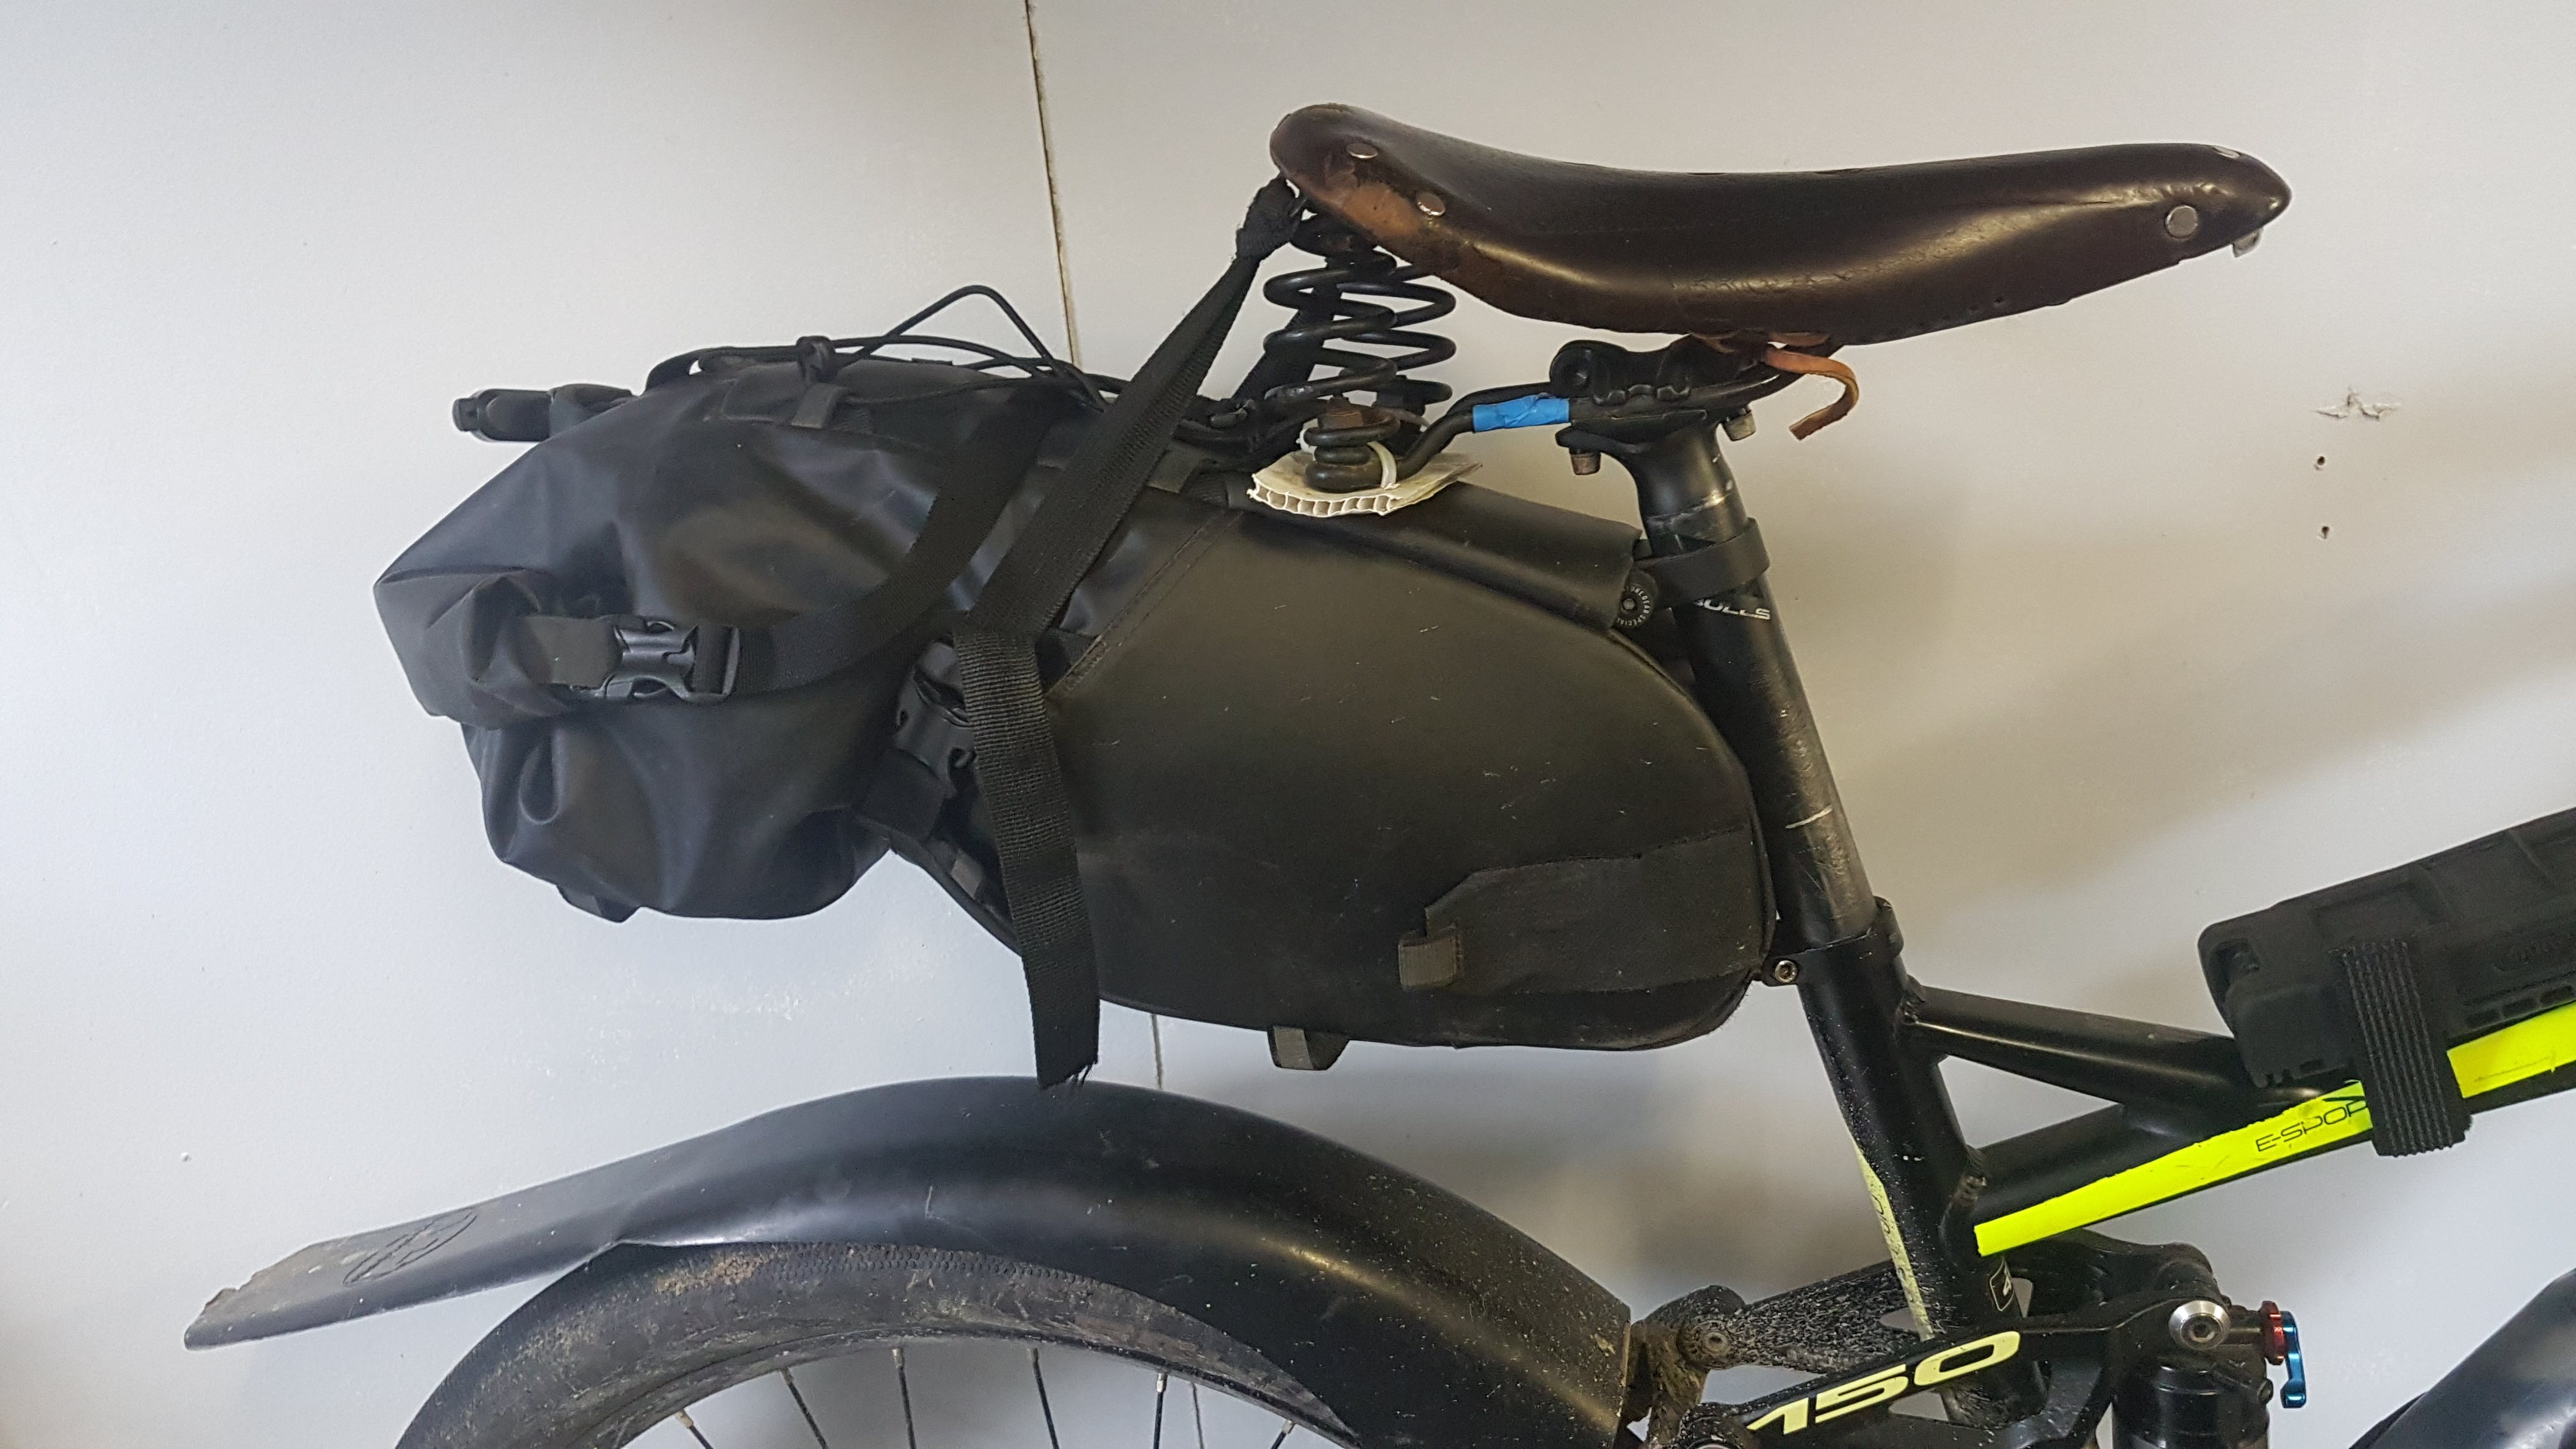 The old Brooks Flyer made  my seat bag sit too low, but it was so comfortable that I put up with it for 3,000km around Europe